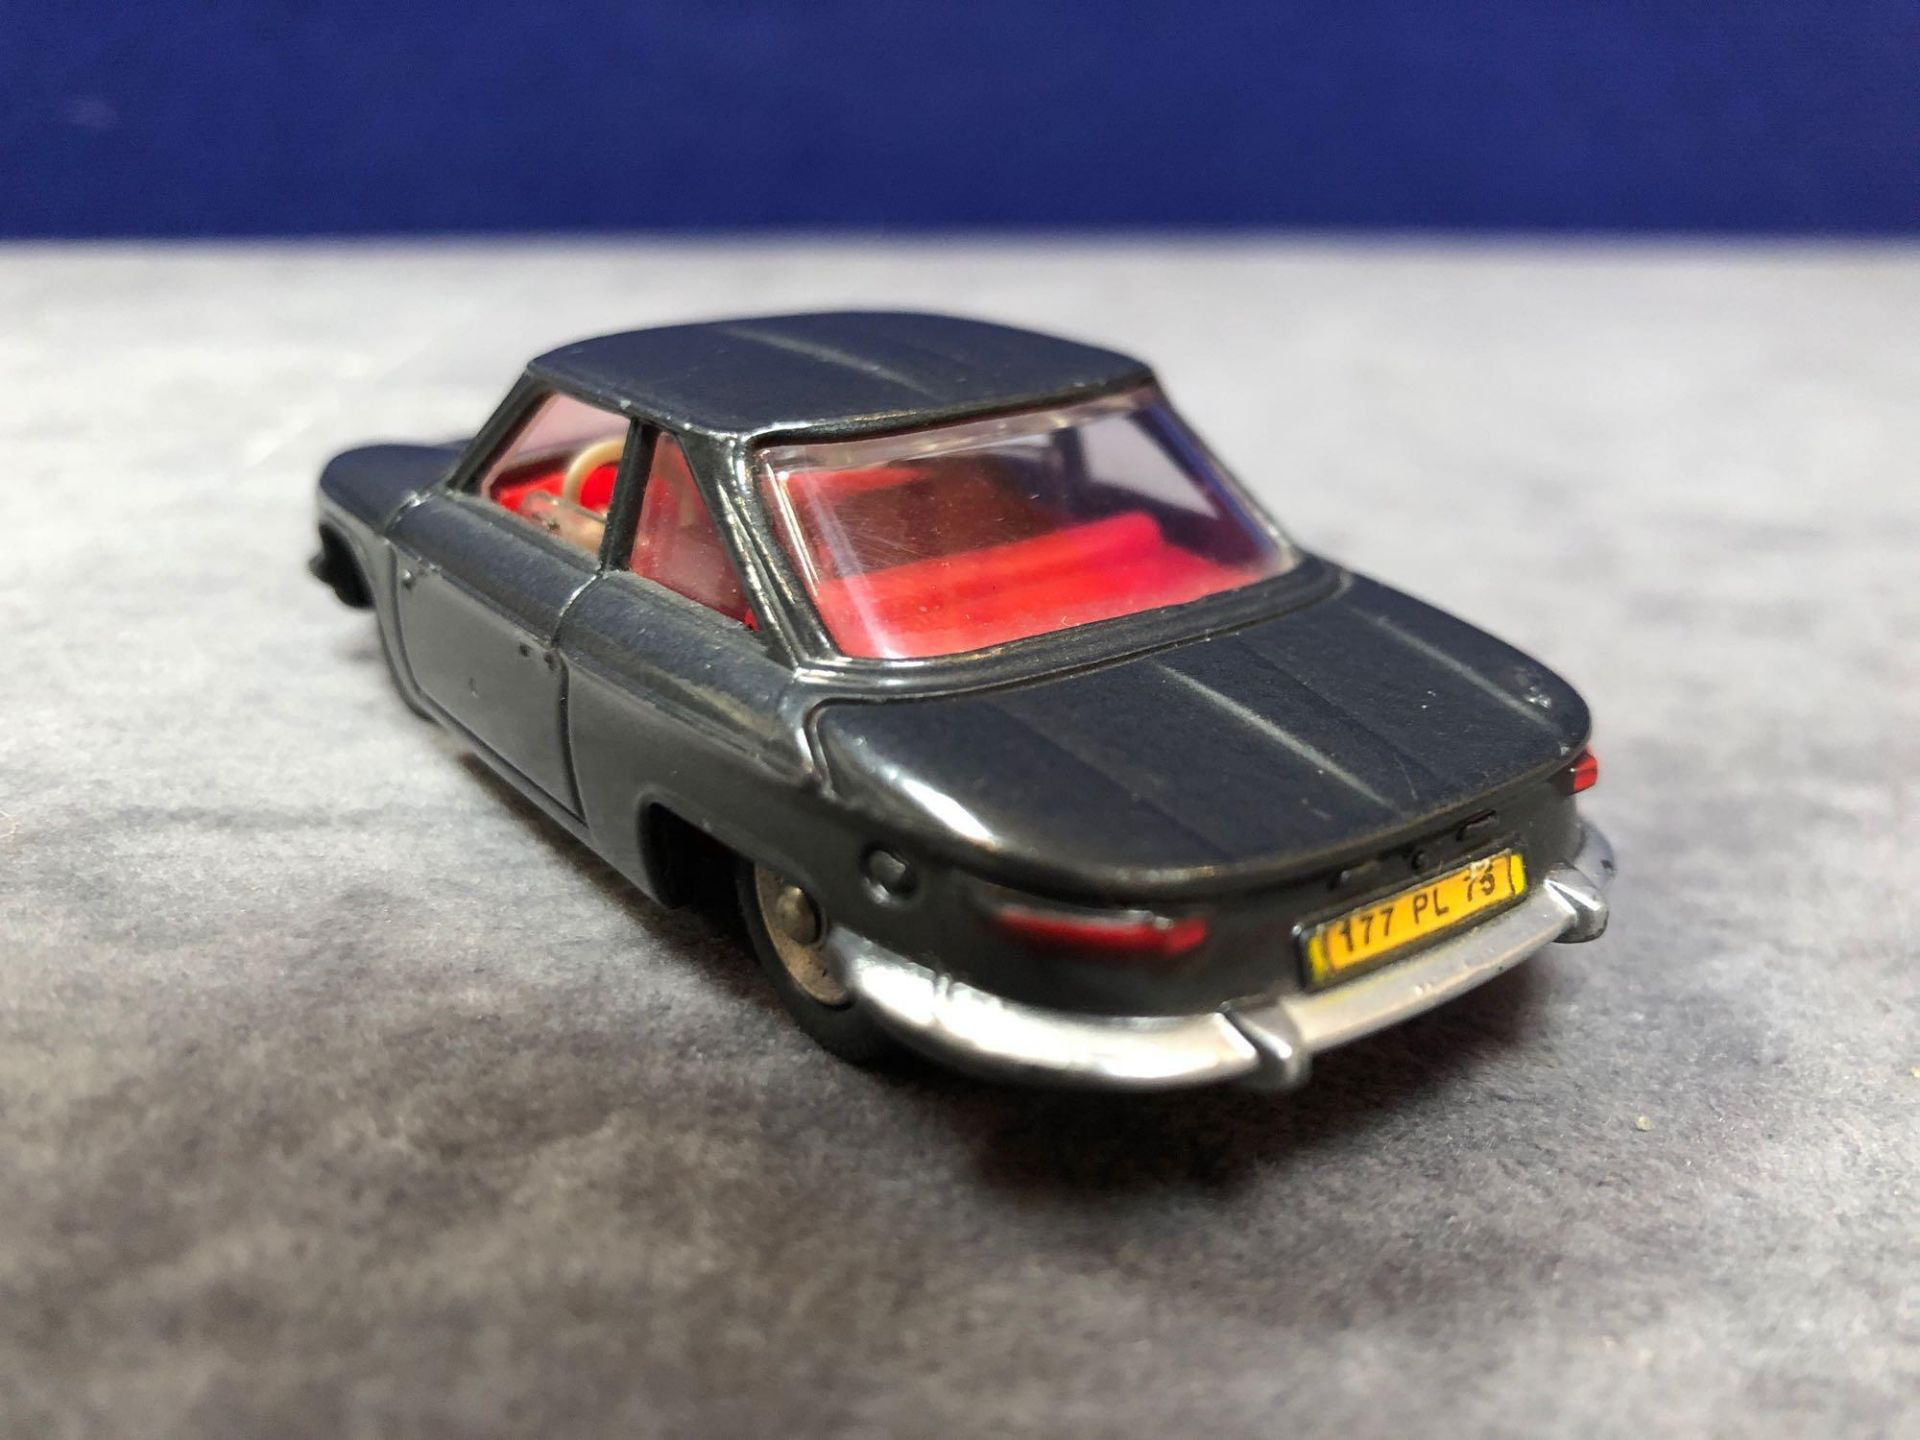 Dinky (France) Diecast #524 Panhard CT24 Coupe In Grey Mint In A Top Quality Repro Box 1964-1966 - Image 3 of 4